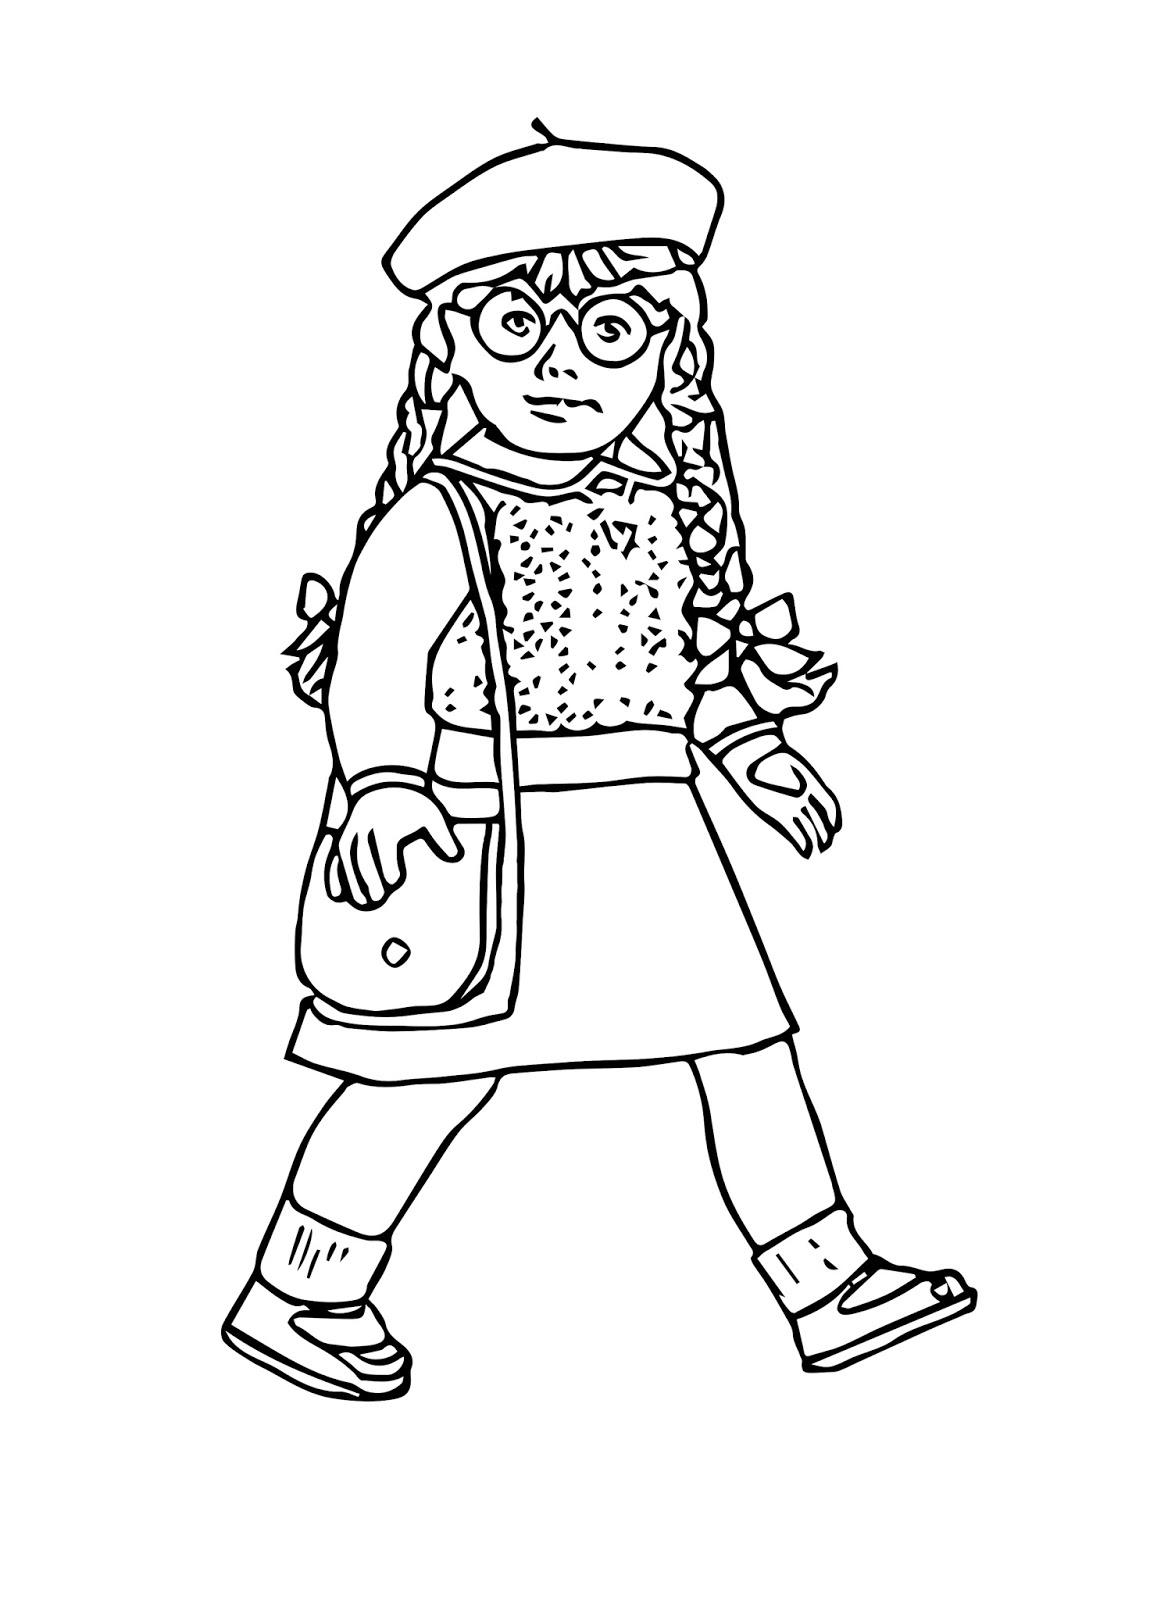 american girl doll coloring pages to print american girl dolls coloring page truly me american pages doll girl coloring print to